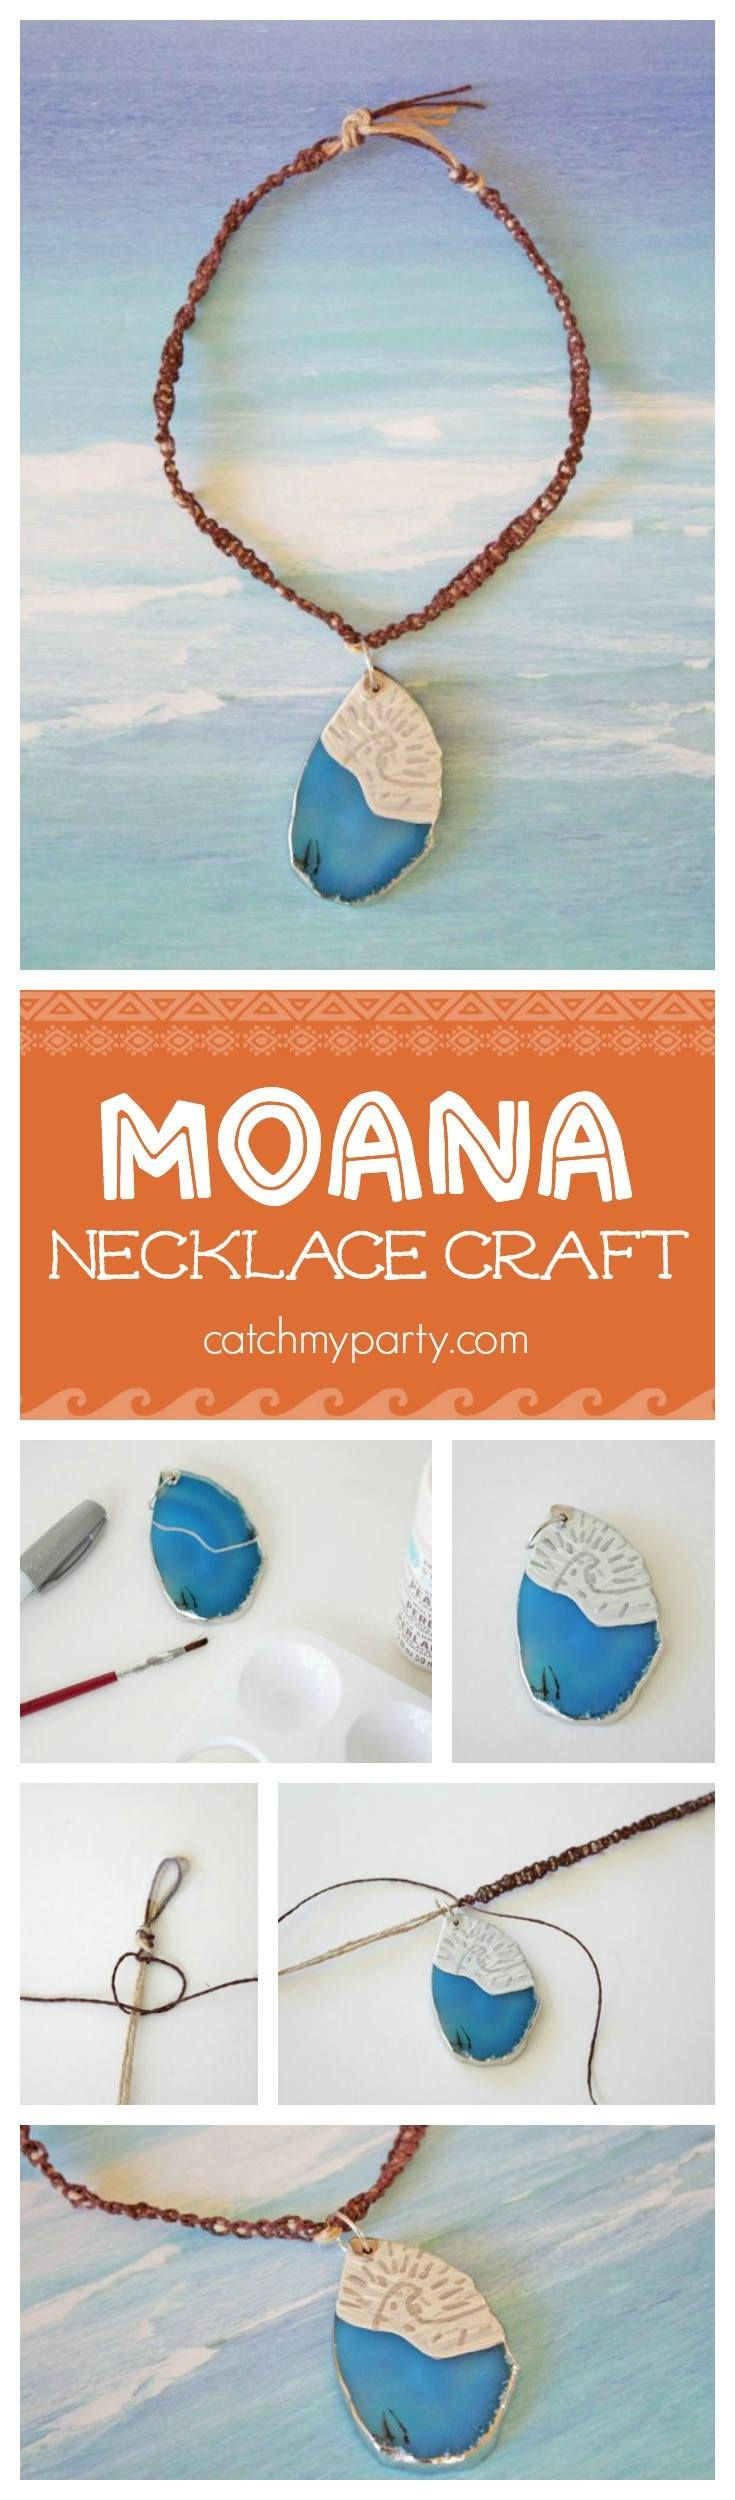 Here's a great Moana party activity or Moana craft for you to do with your kids! See more party ideas at catchmyparty.com!